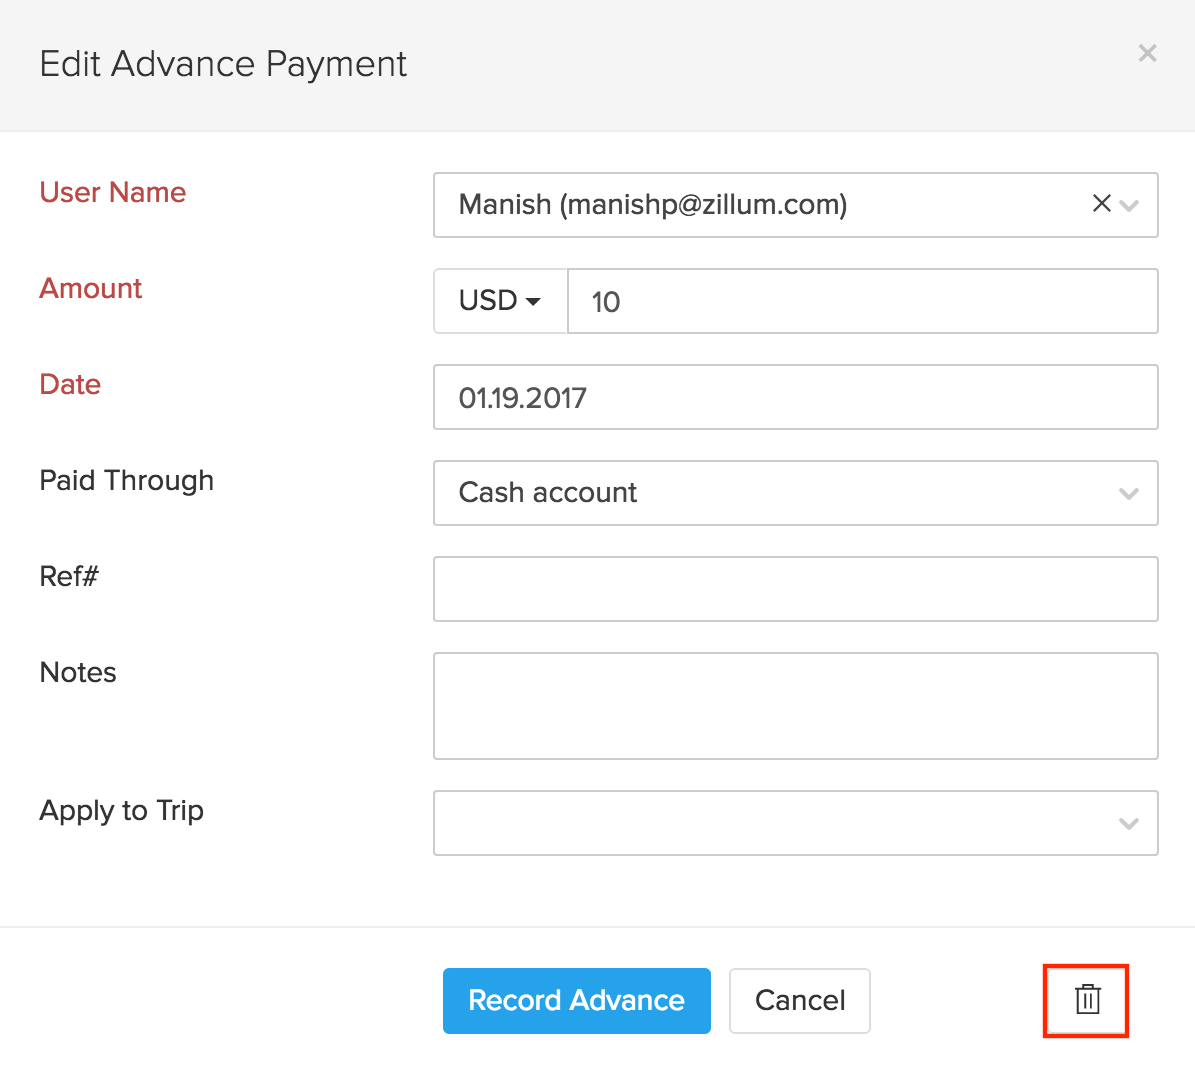 Deleting advance payment